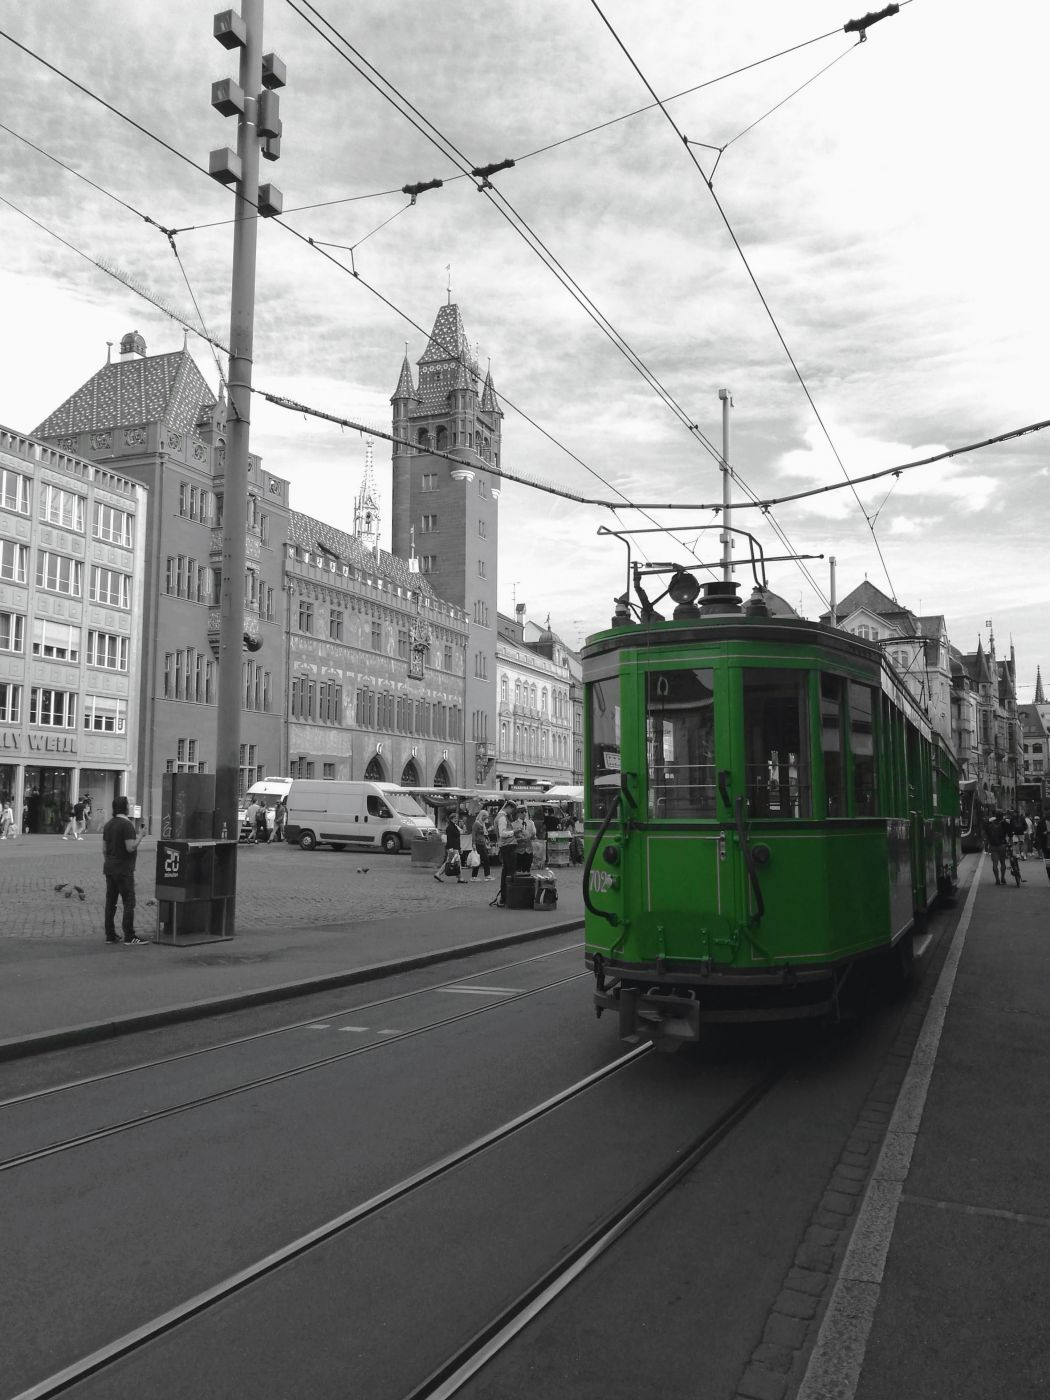 Vintage tram in Basel, Switzerland